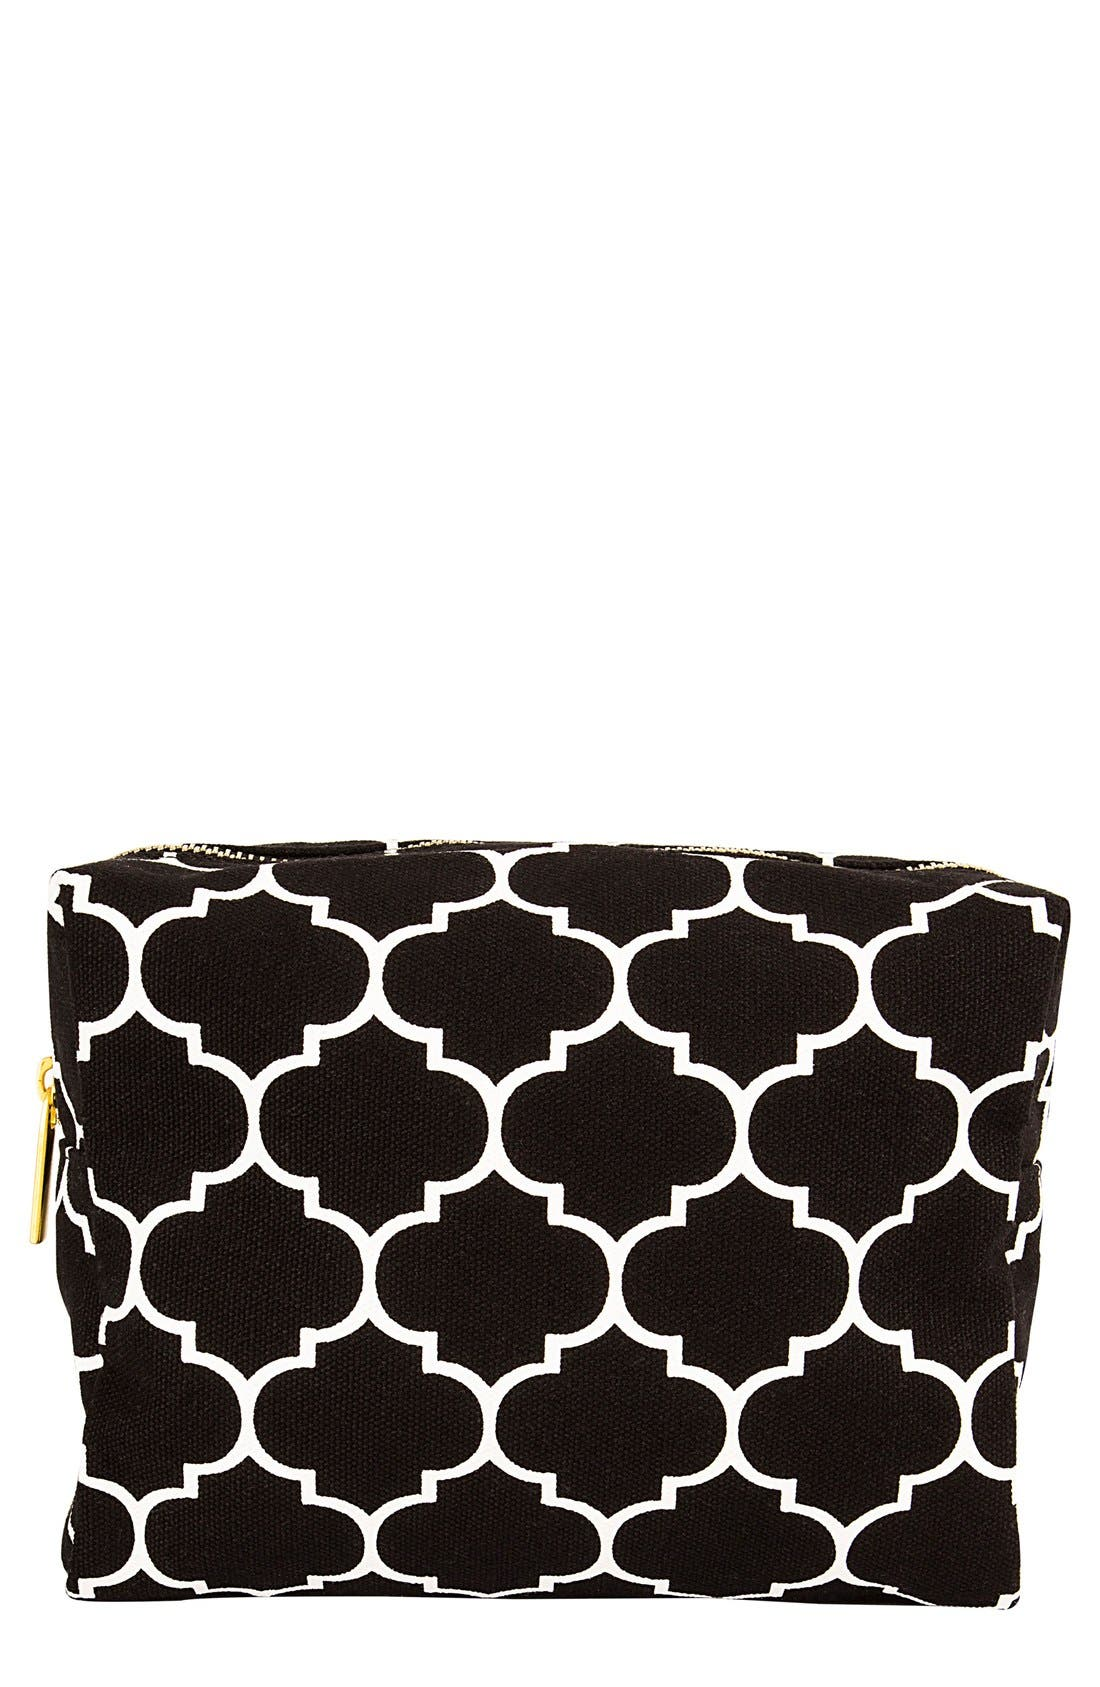 Monogram Cosmetics Bag,                         Main,                         color, BLACK